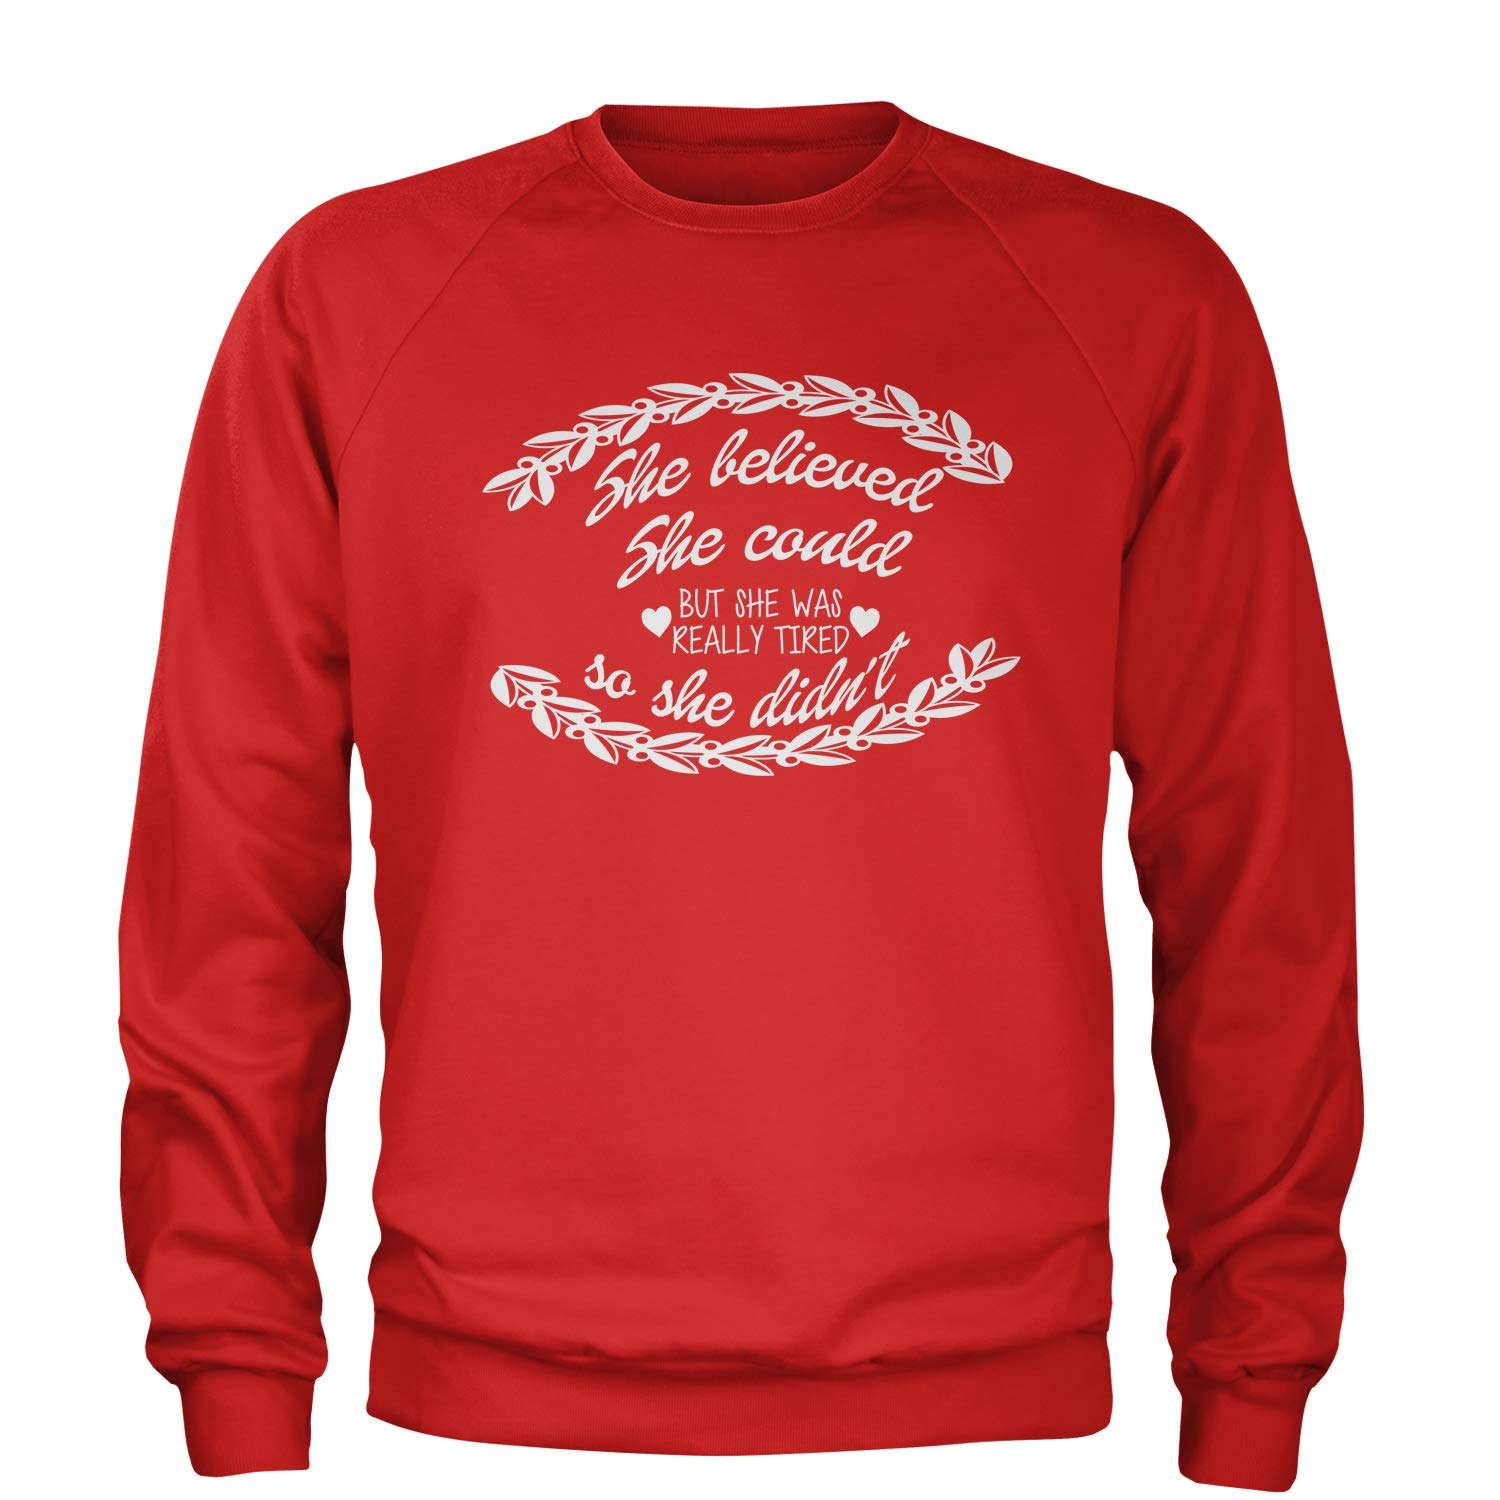 But She was Tired Crewneck Sweatshirt Expression Tees She Believed She Could